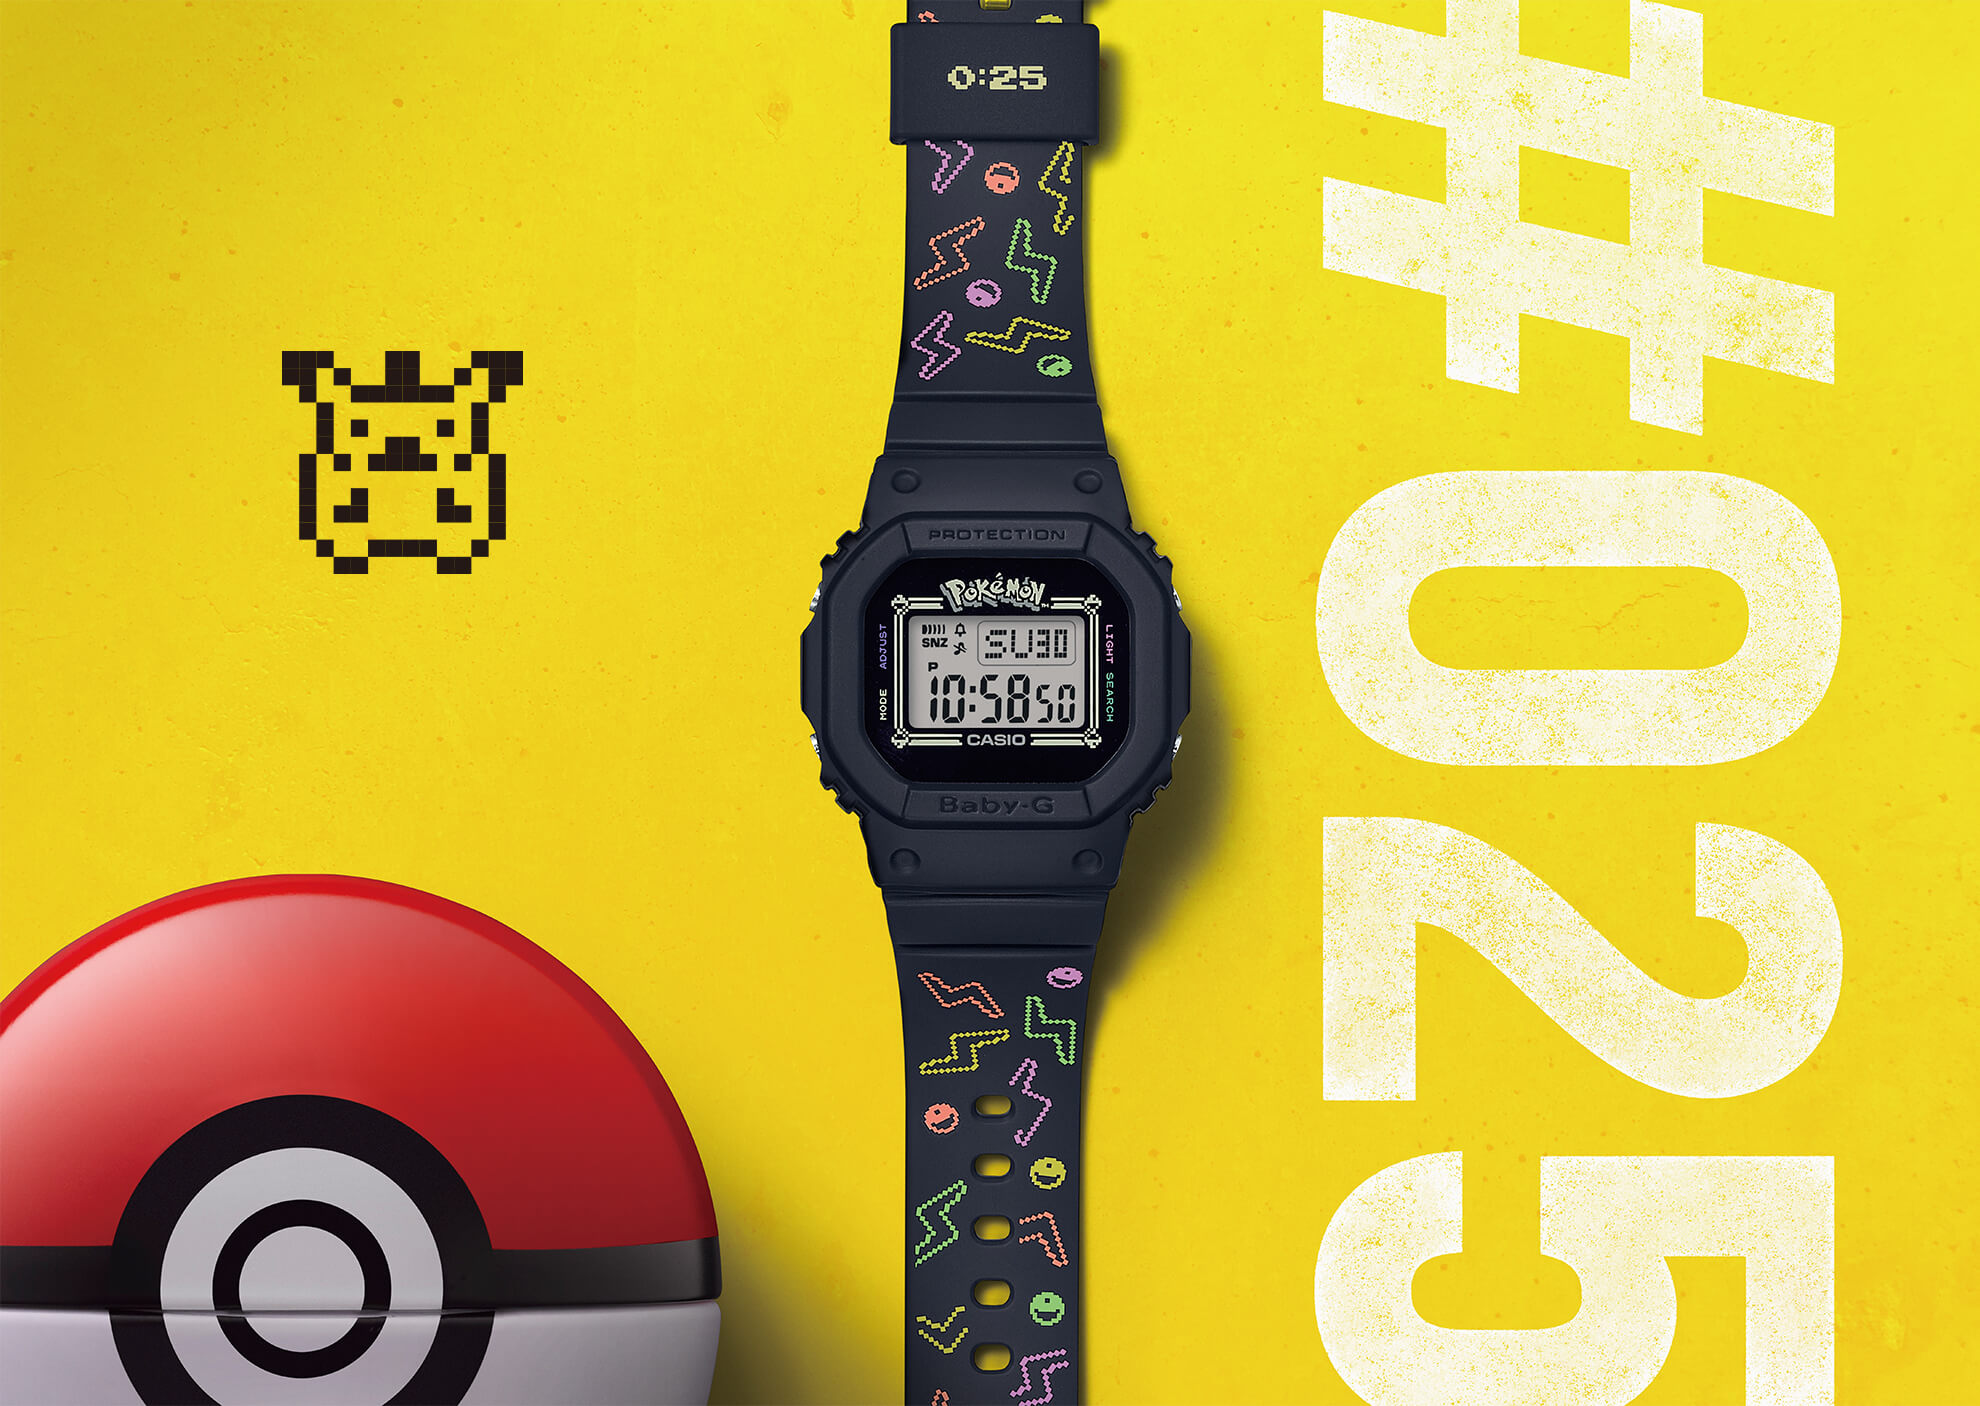 casio g shock instructions 5034